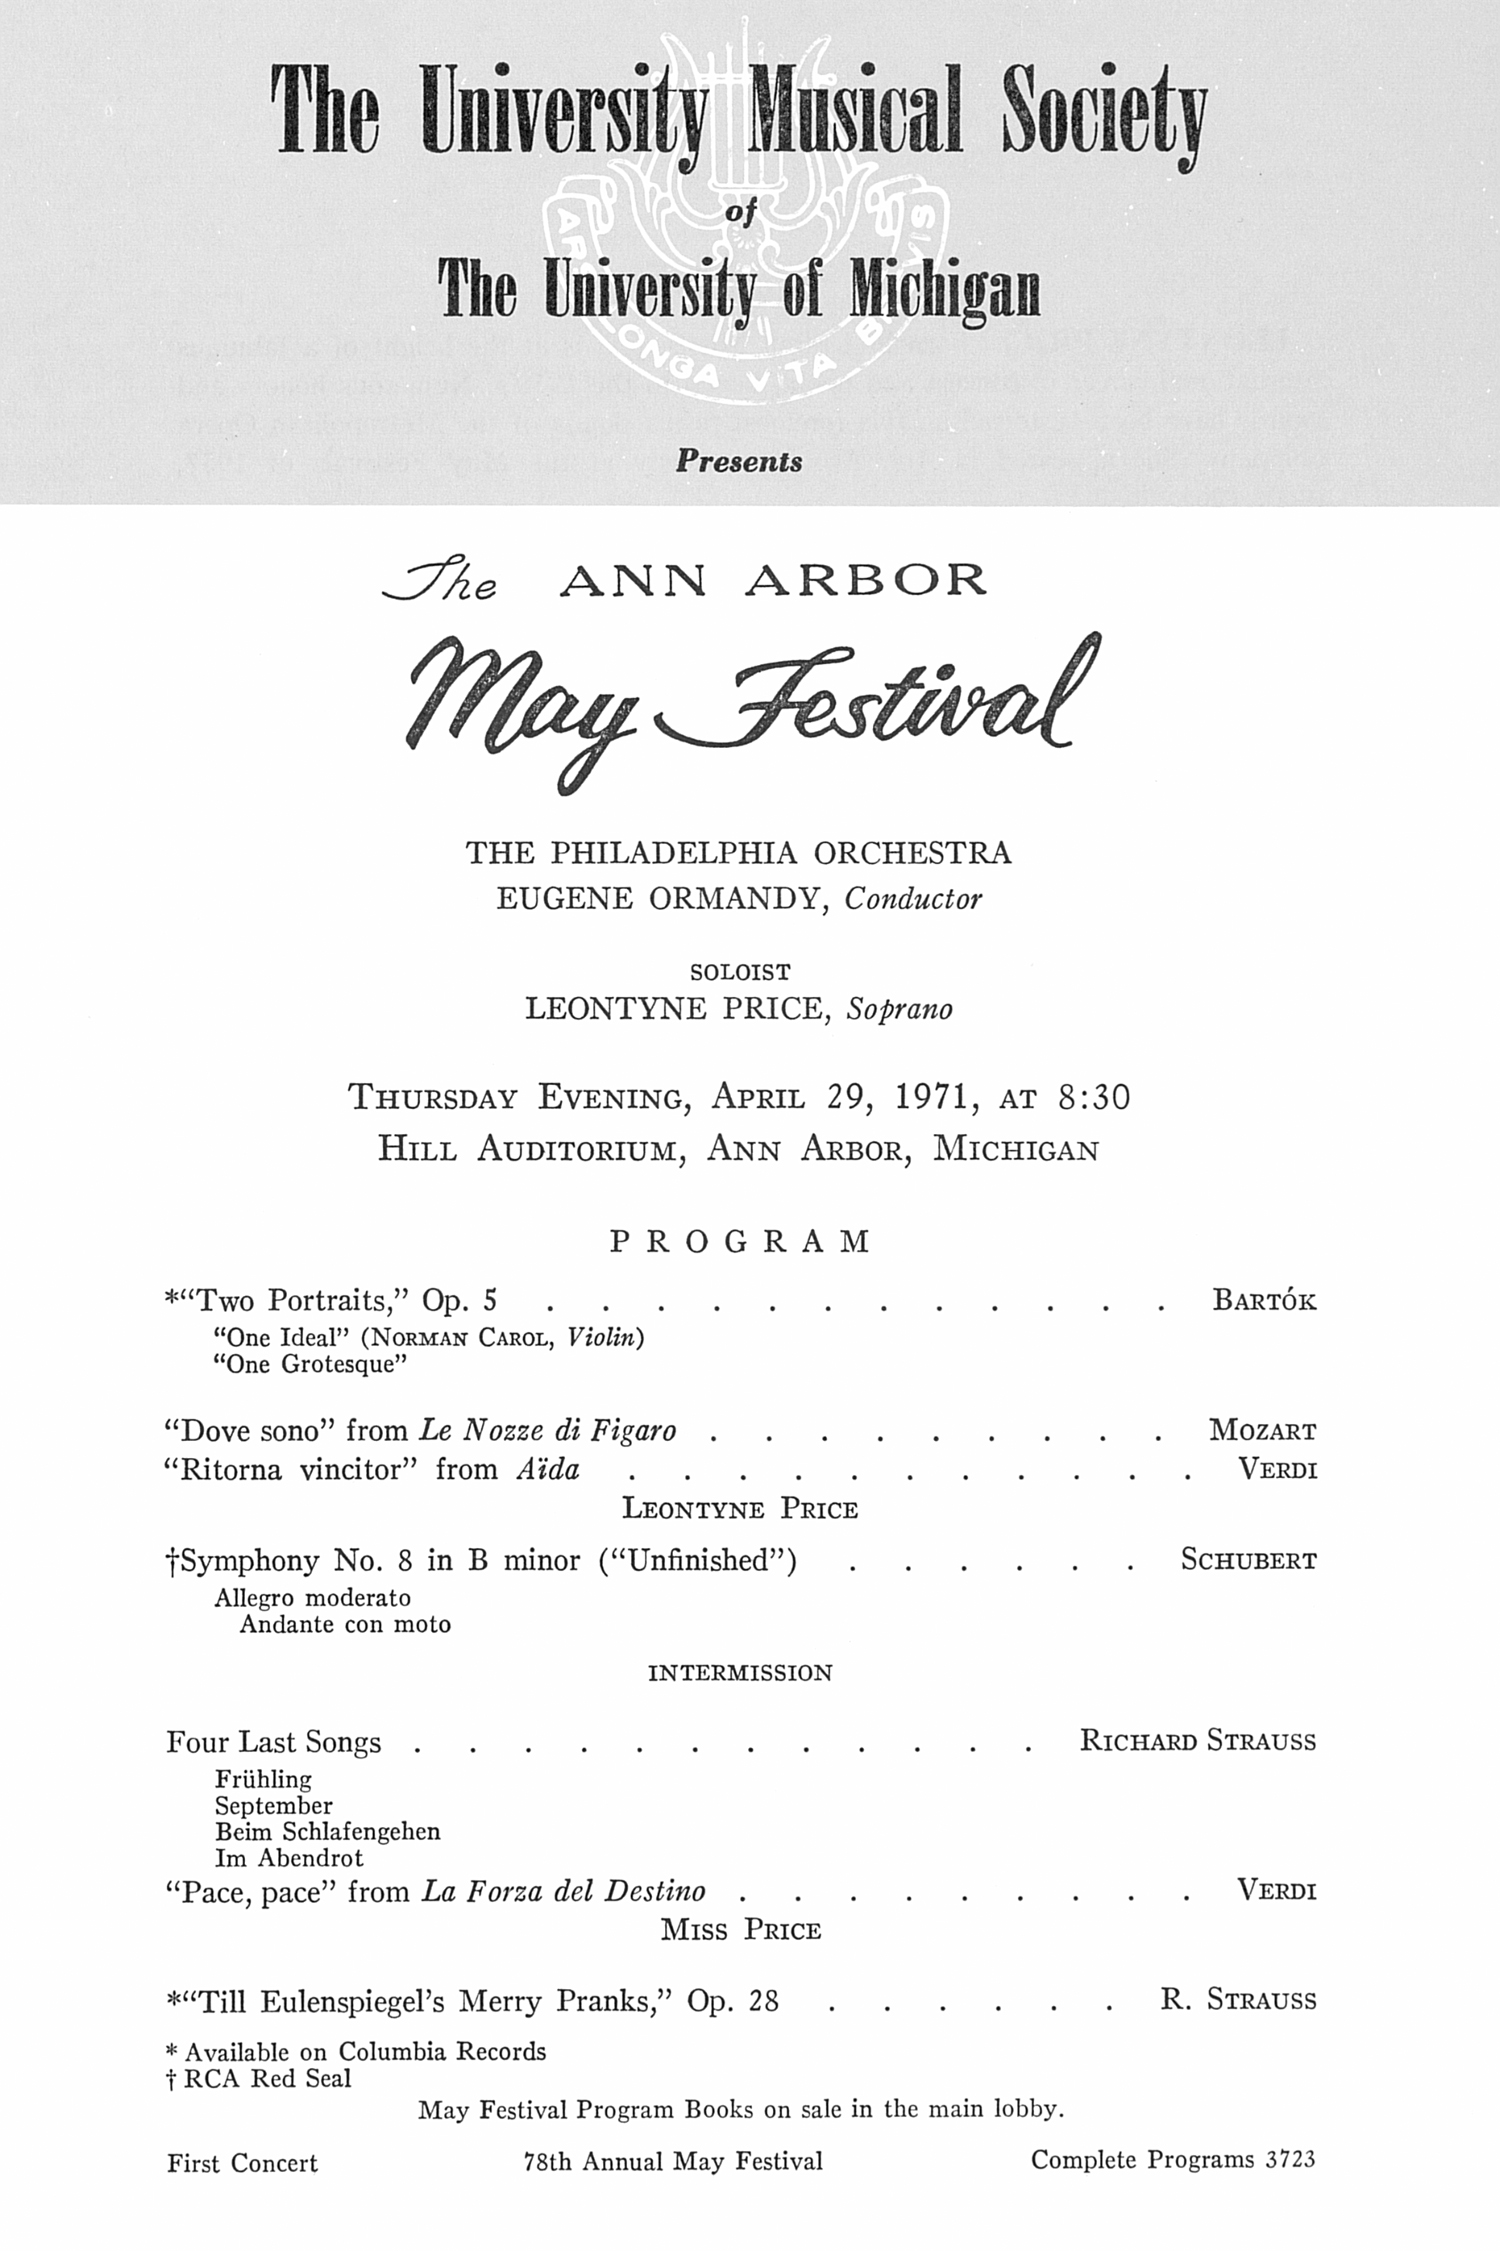 UMS Concert Program, April 29, 1971: The Ann Arbor May Festival -- The Philadelphia Orchestra image